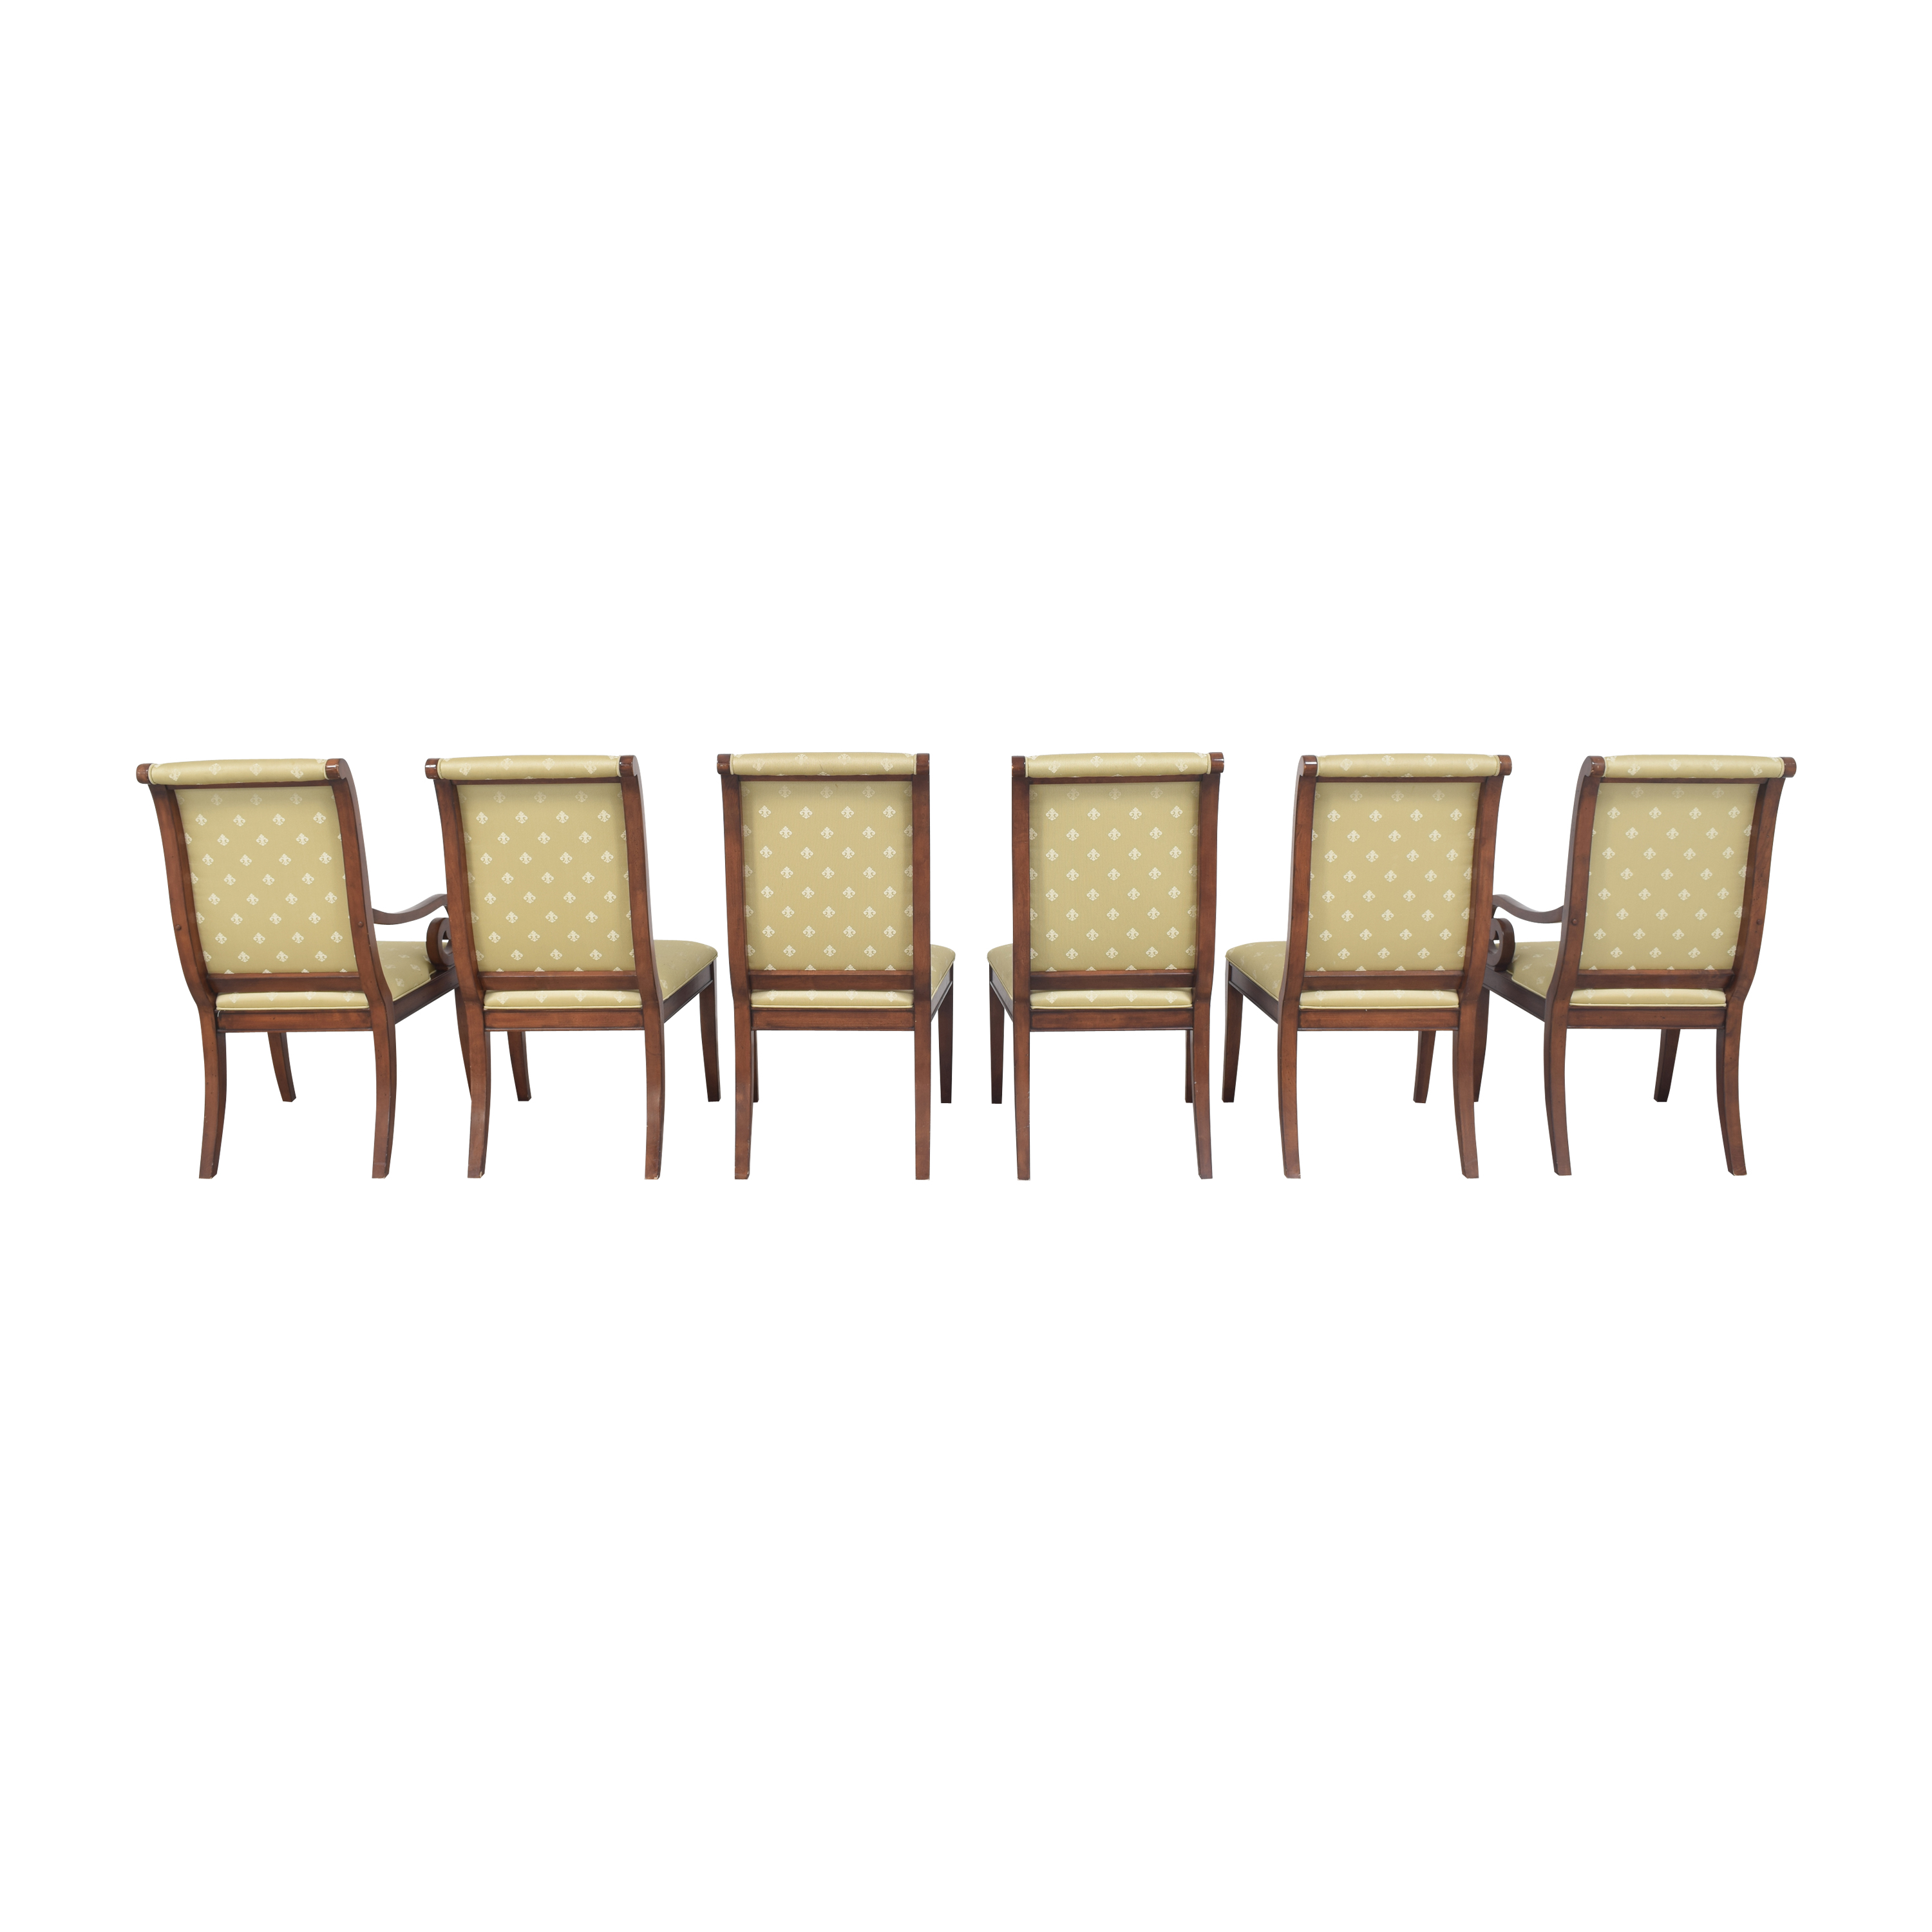 Drexel Heritage Drexel Heritage Upholstered Dining Chairs coupon